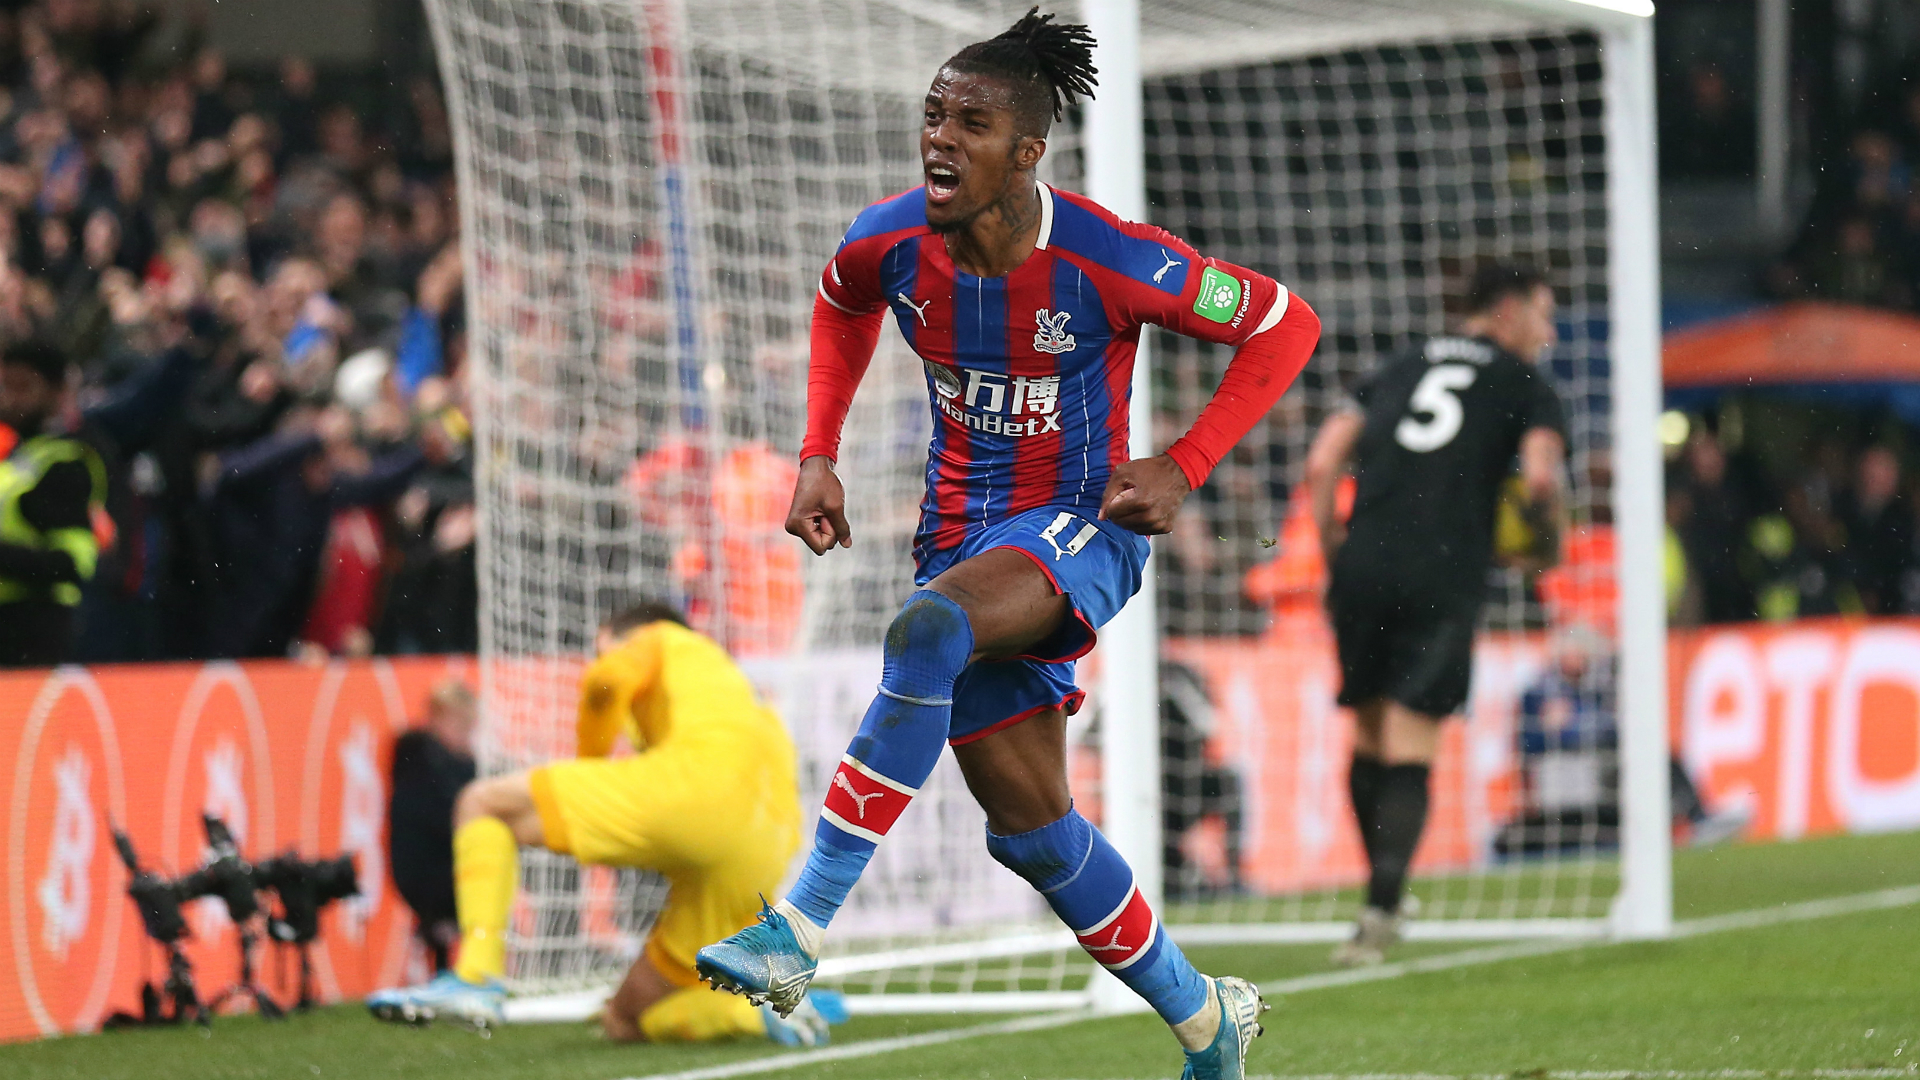 Crystal Palace 1-1 Brighton and Hove Albion: Zaha stunner seals point